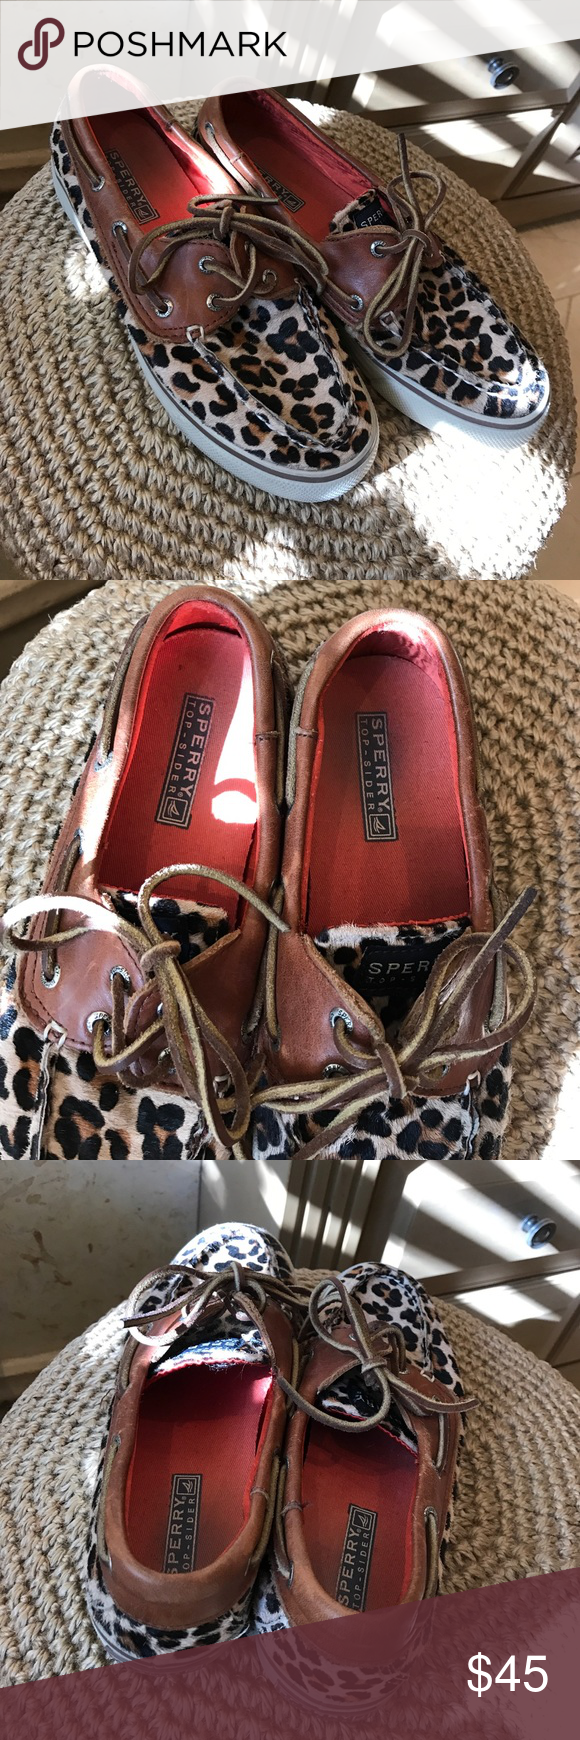 🦋LEOPARD SPERRYS🦋 Leopard print adorable Sperry boat shoes!! MAKE AN OFFER!! Will not negotiate price in the comments, but please ask any and all questions and I will answer the best I can!! Orange/poppyseed colored liner. Very well-loved. No trades. 🦋 Sperry Shoes Flats & Loafers